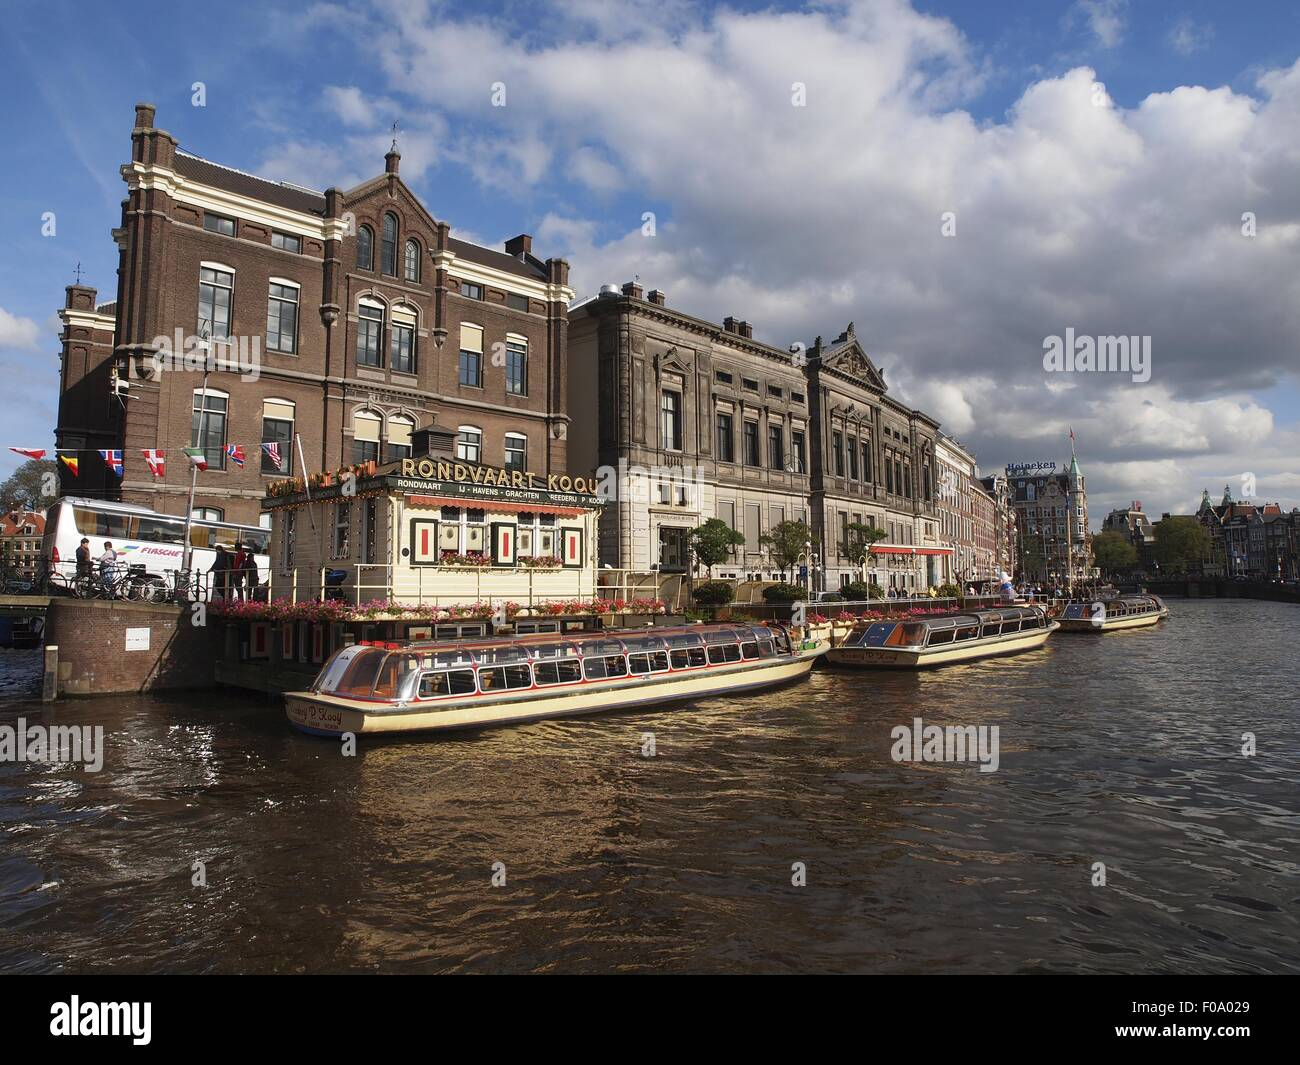 View of ferryboats at canal in Rokin, Amsterdam, Netherlands - Stock Image